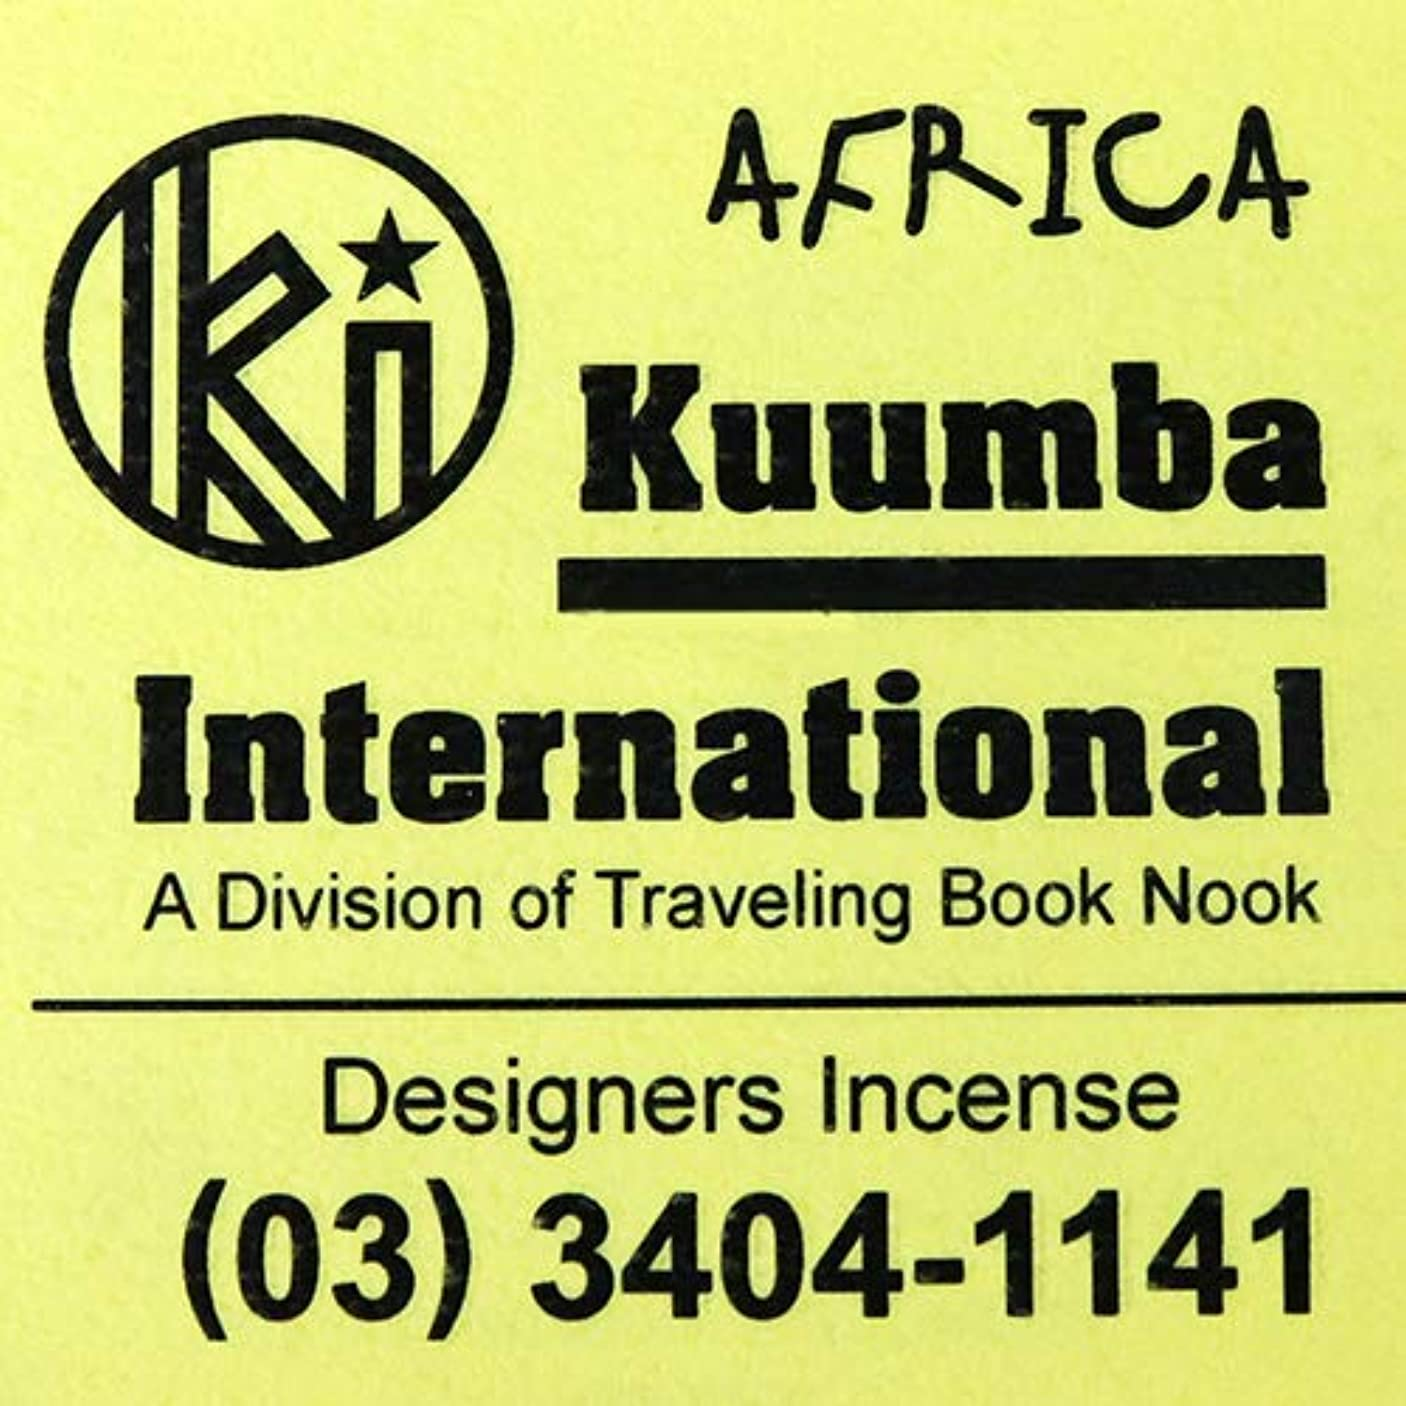 ビスケットつづり打撃(クンバ) KUUMBA『incense』(AFRICA) (AFRICA, Regular size)